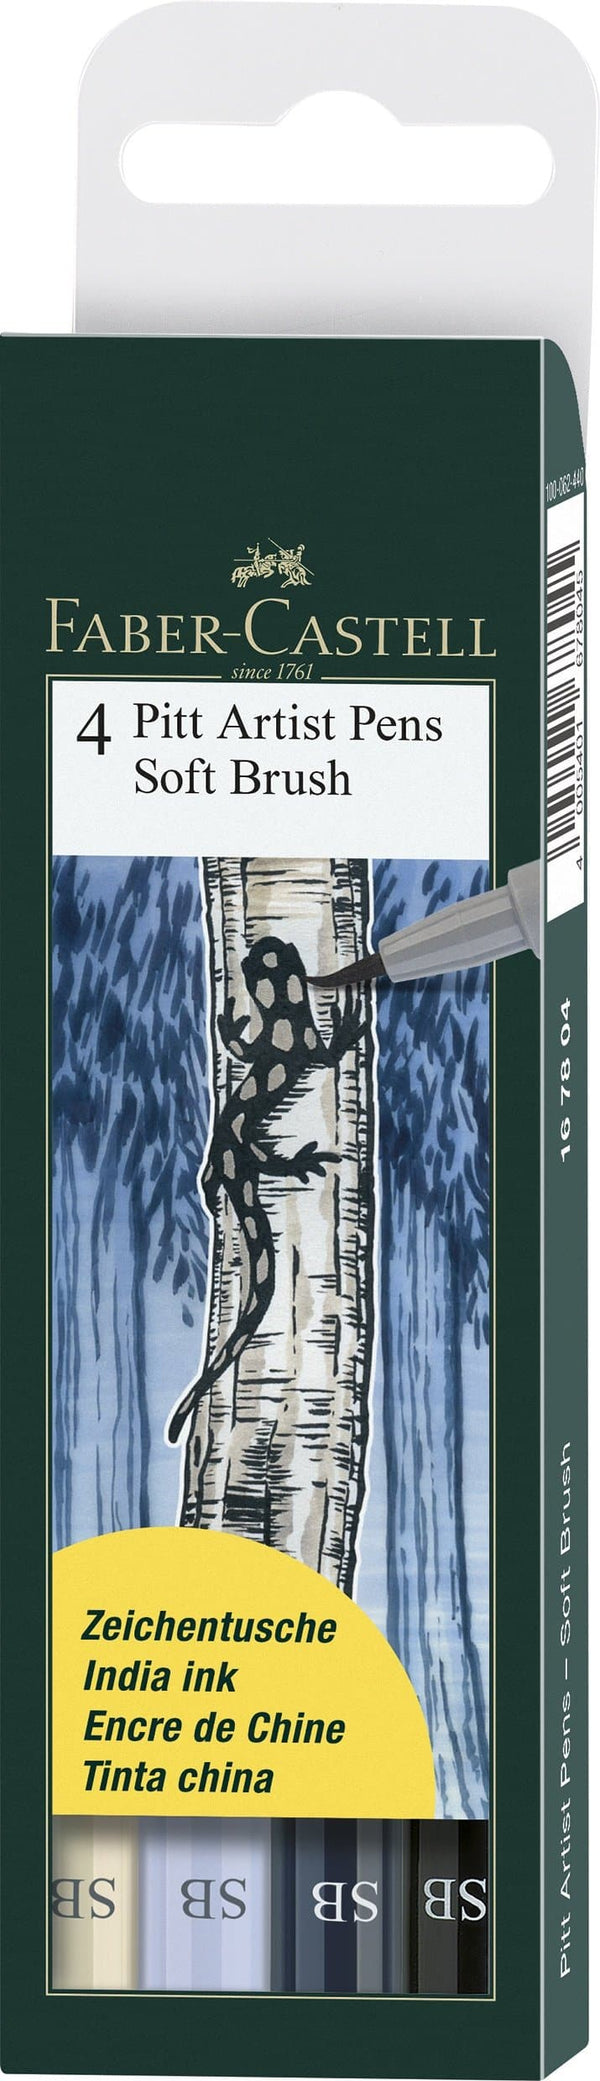 Pitt Artist Pen India Ink Soft Brush Grey Wallet of 4 - Blesket Canada